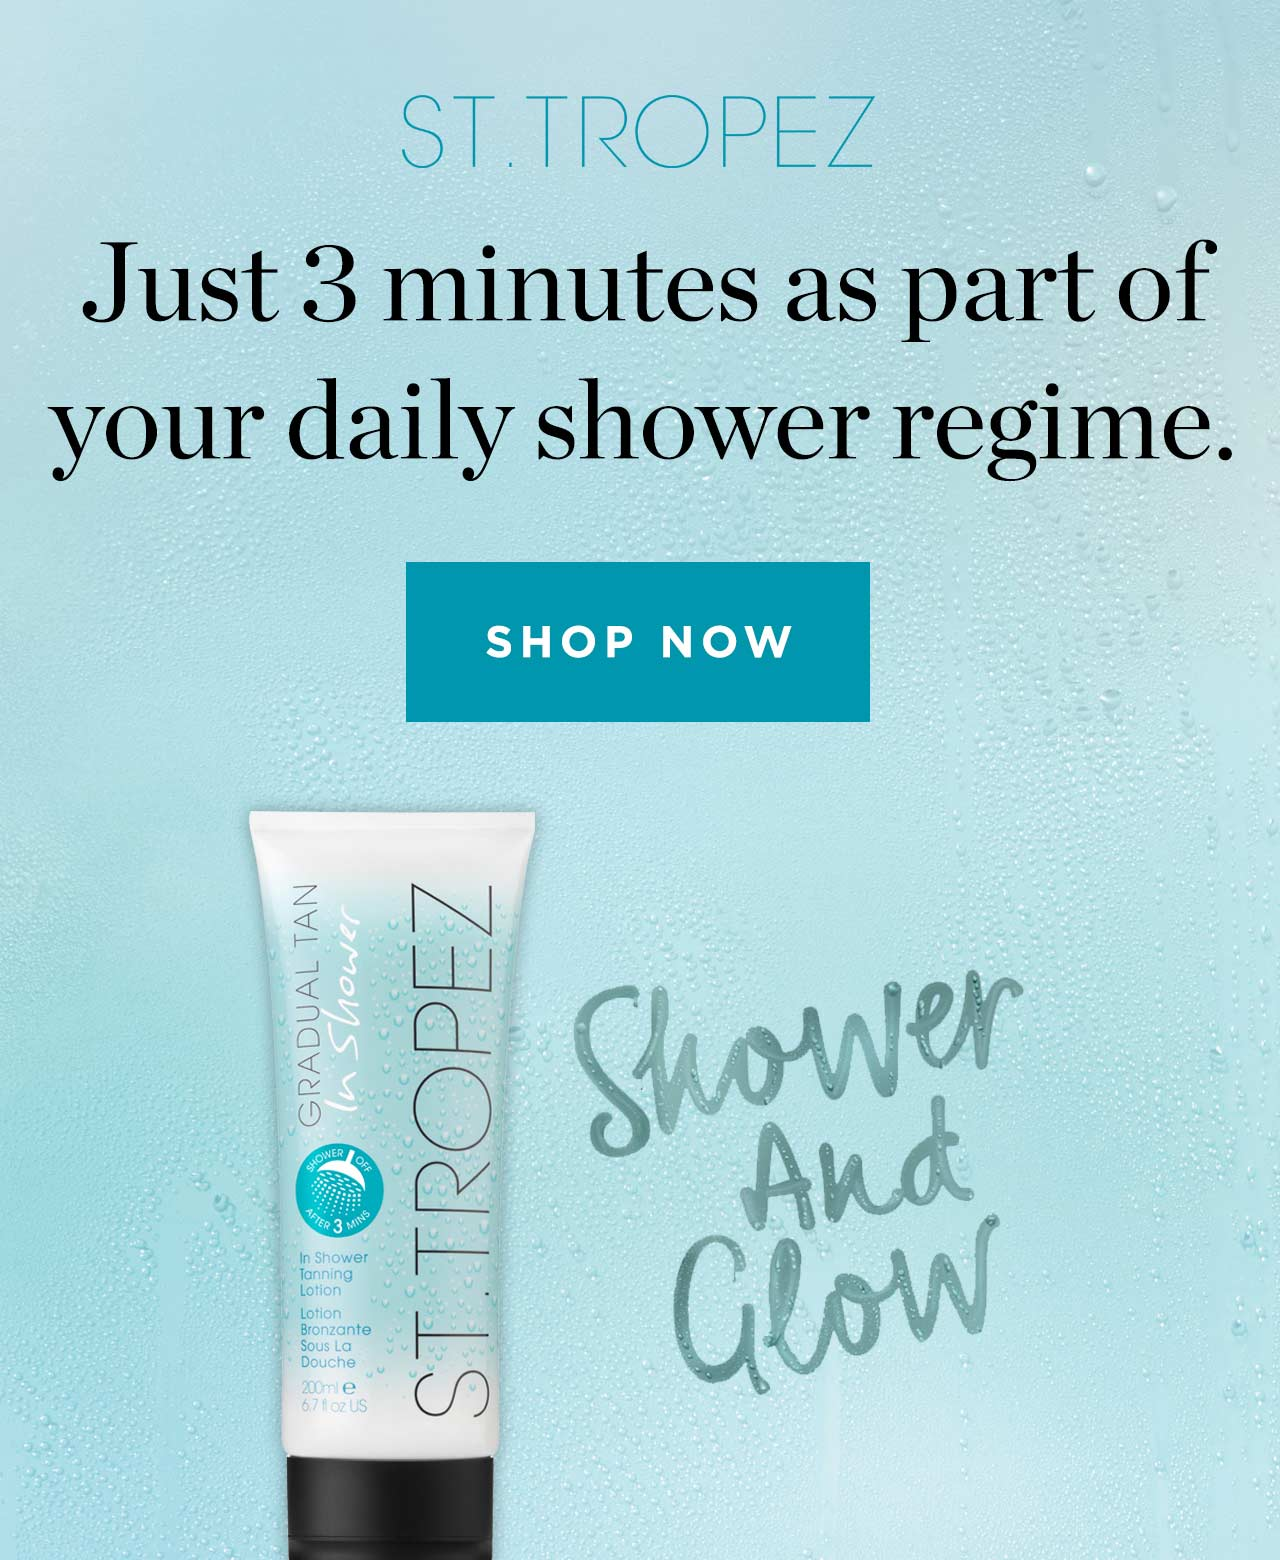 St. Tropez Just 3 minutes as part of your daily shower regime.